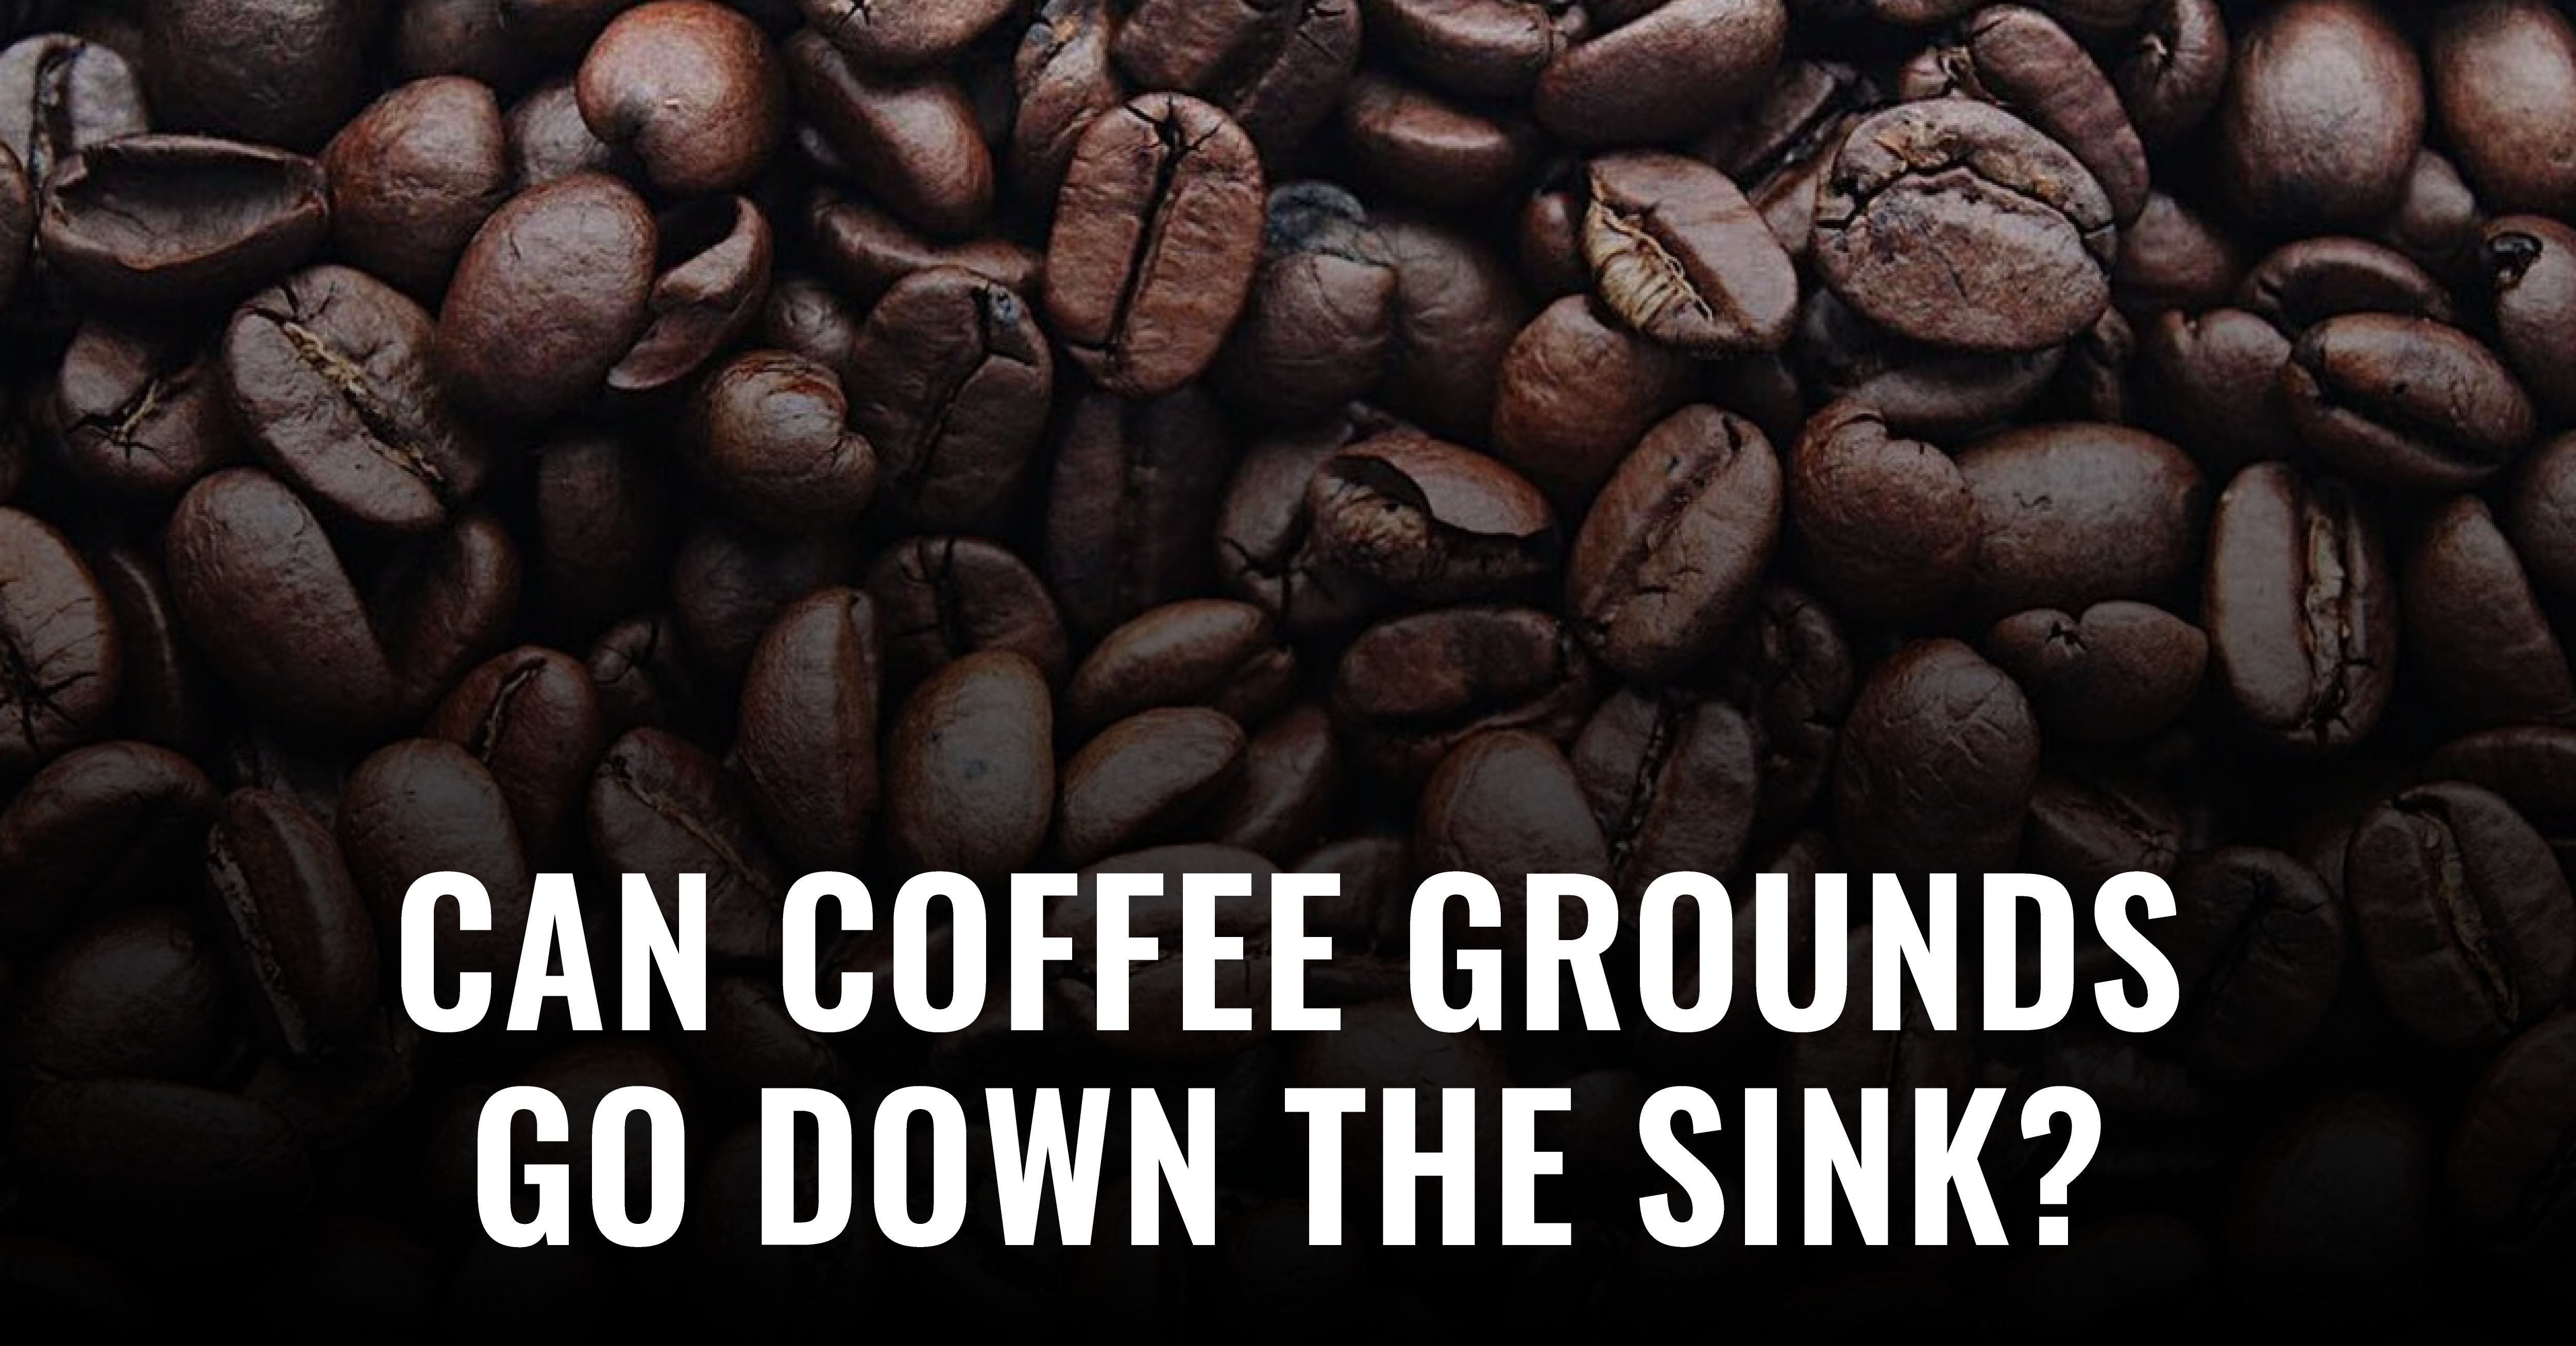 Can I Pour Coffee Grounds Down the Sink?